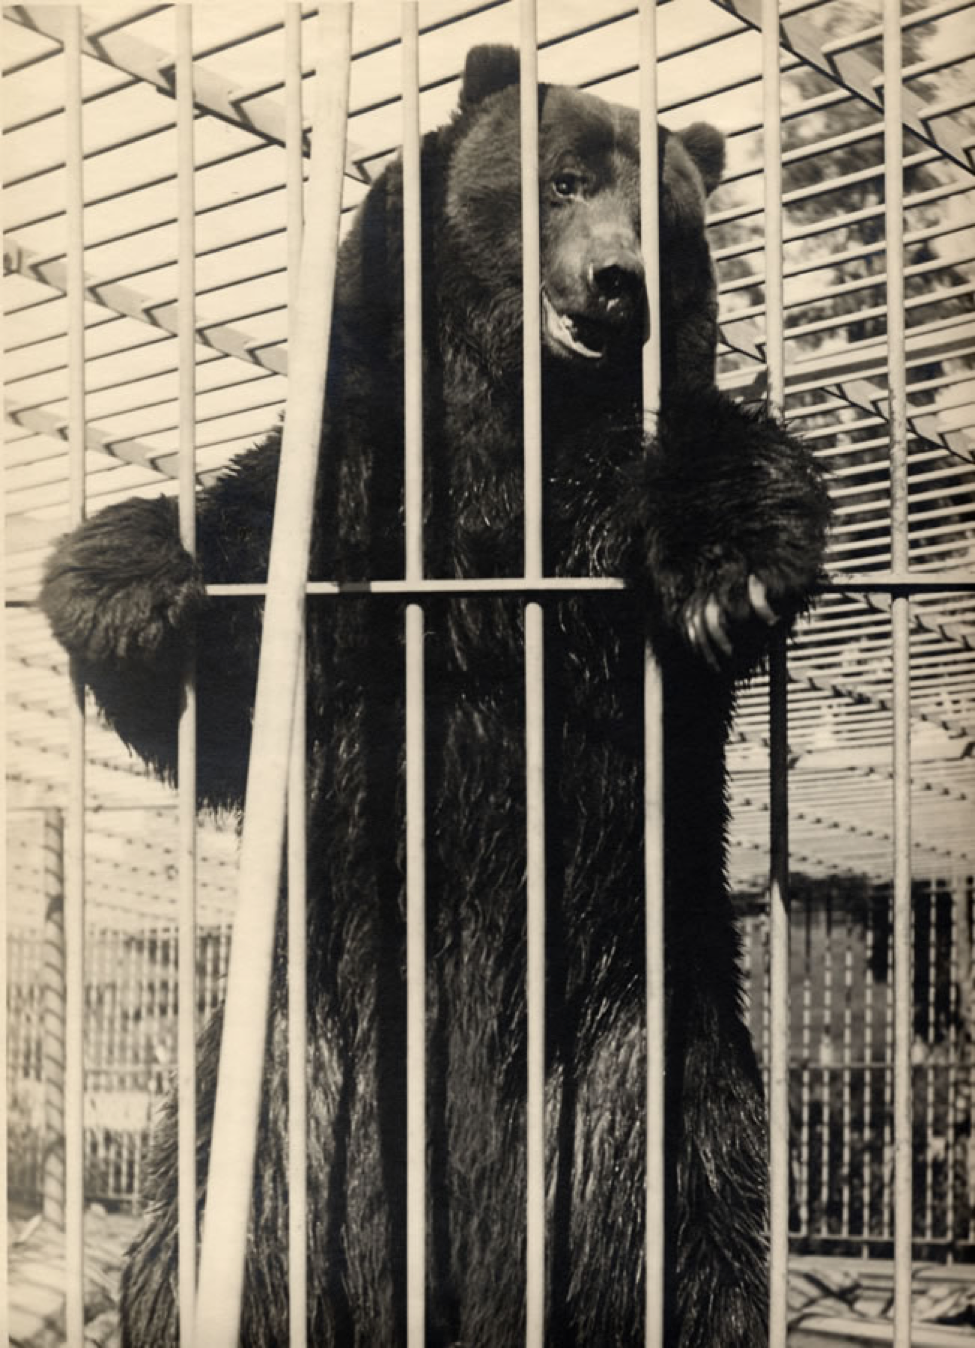 Monarch, the last captive California grizzly, in San Francisco around 1900.